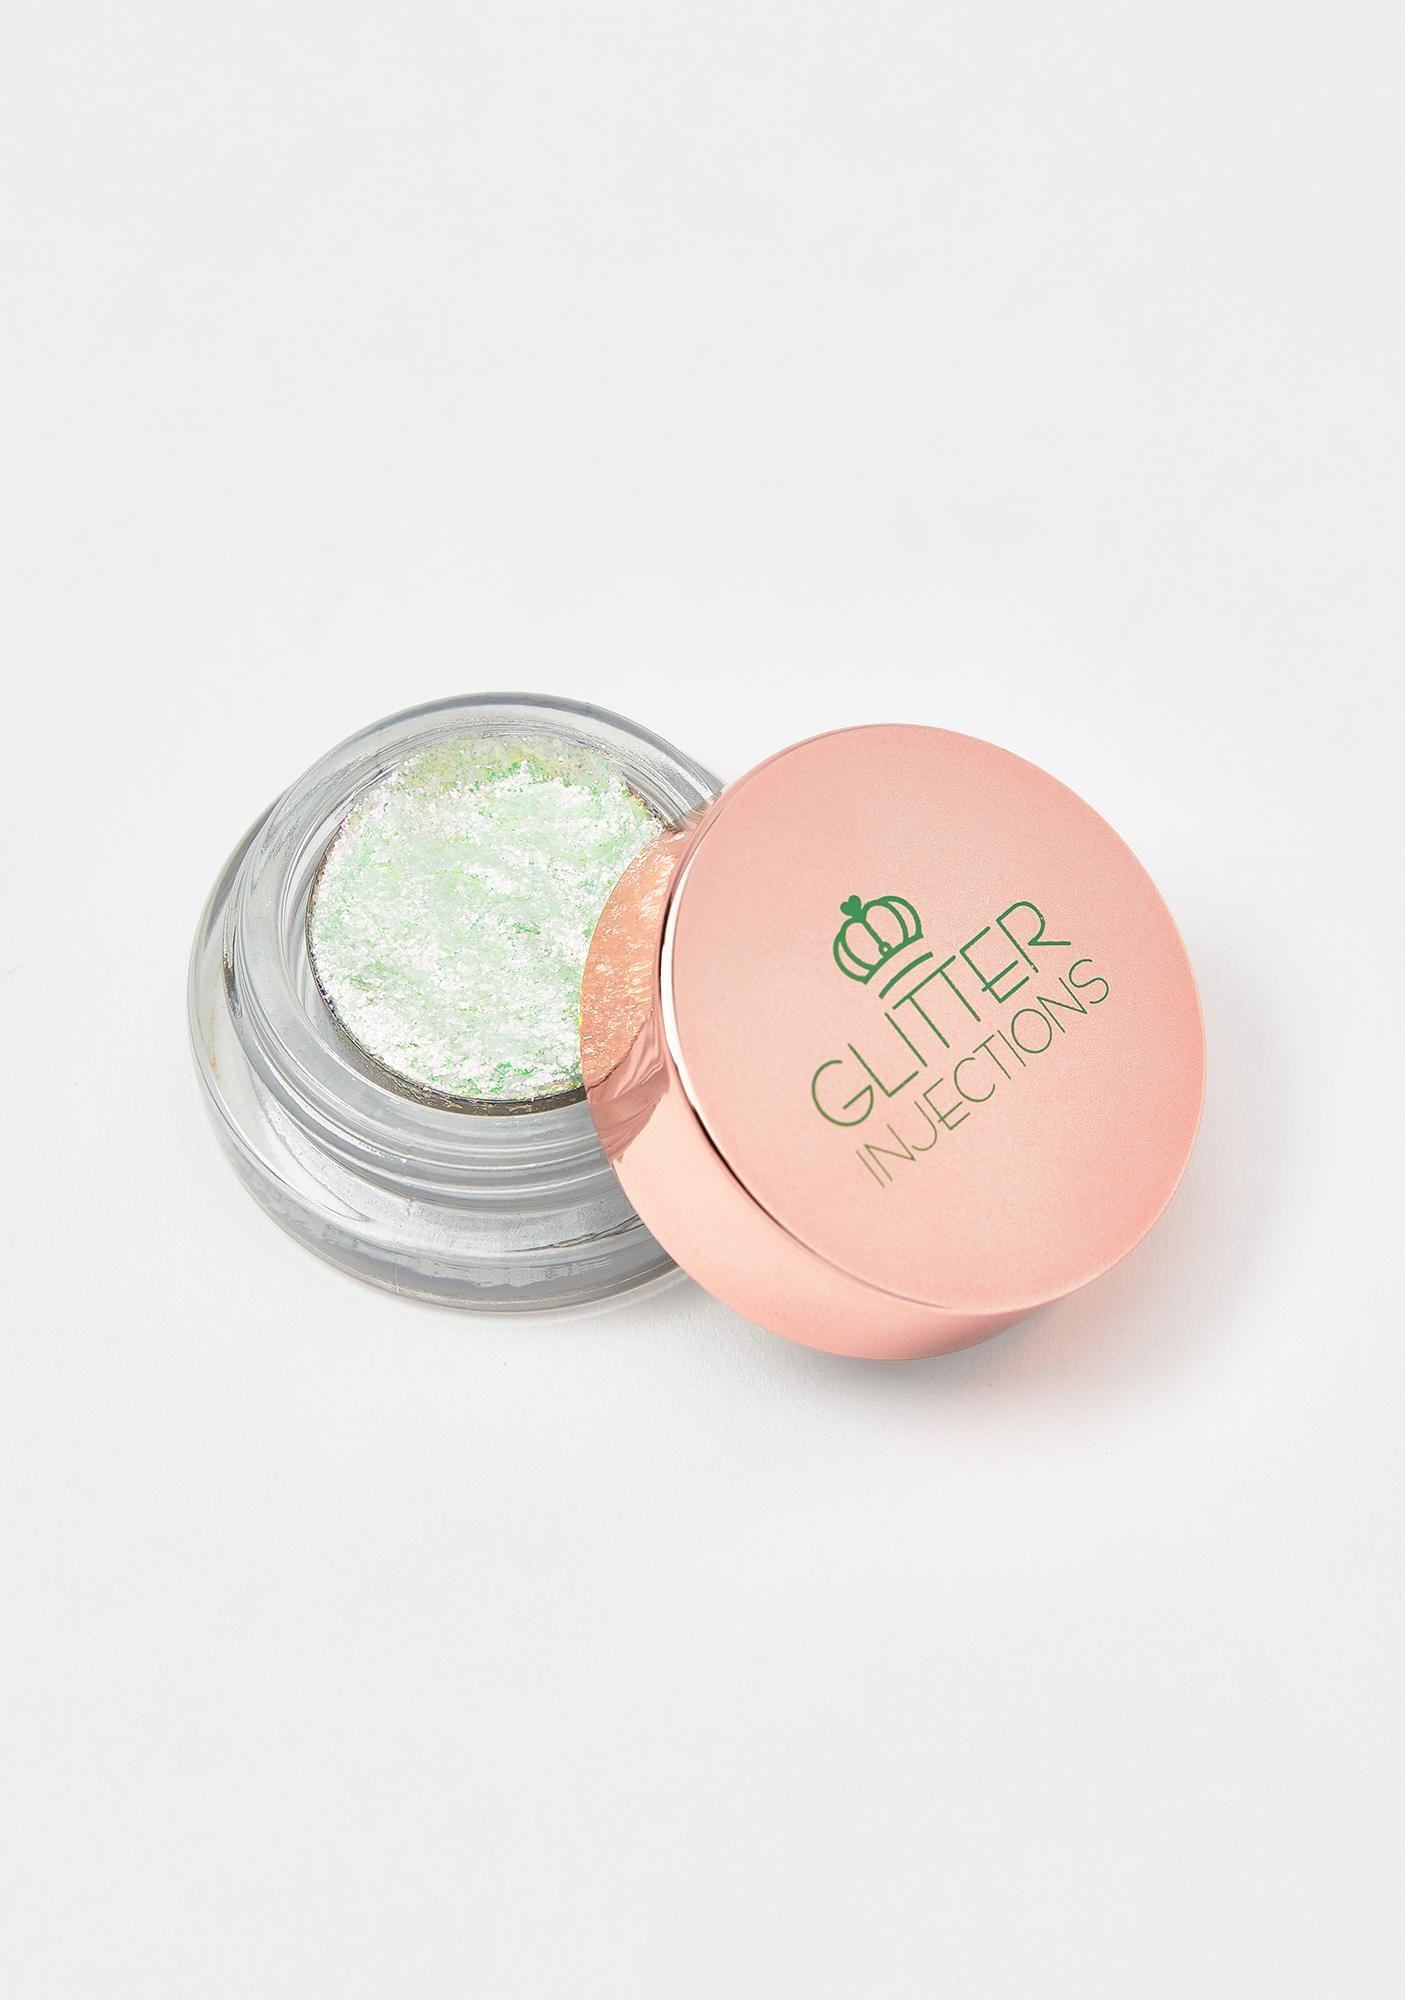 Glitter Injections Sea The Glow Invisapearl Highlighter